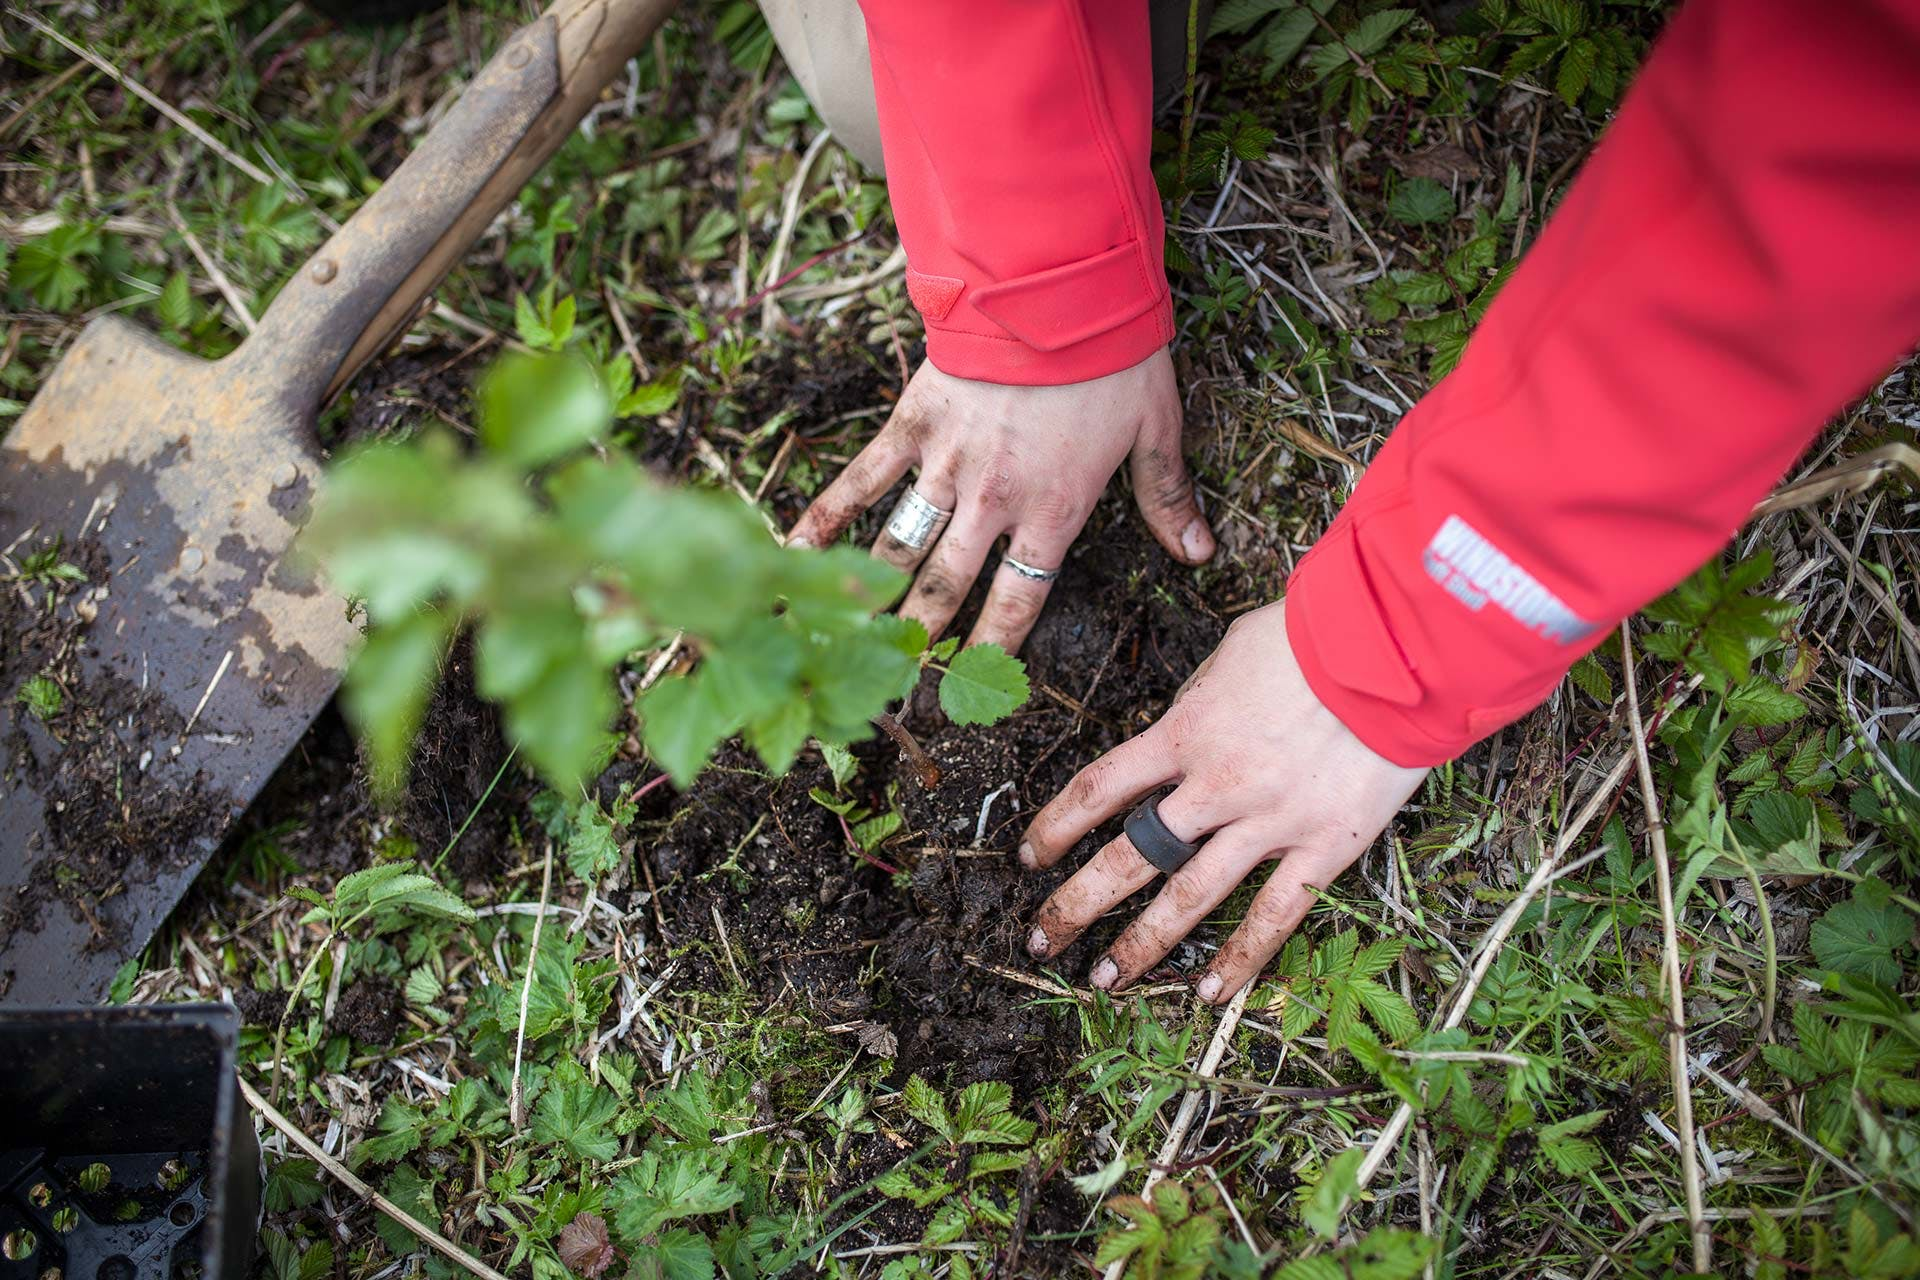 Hands of a person planting a tree